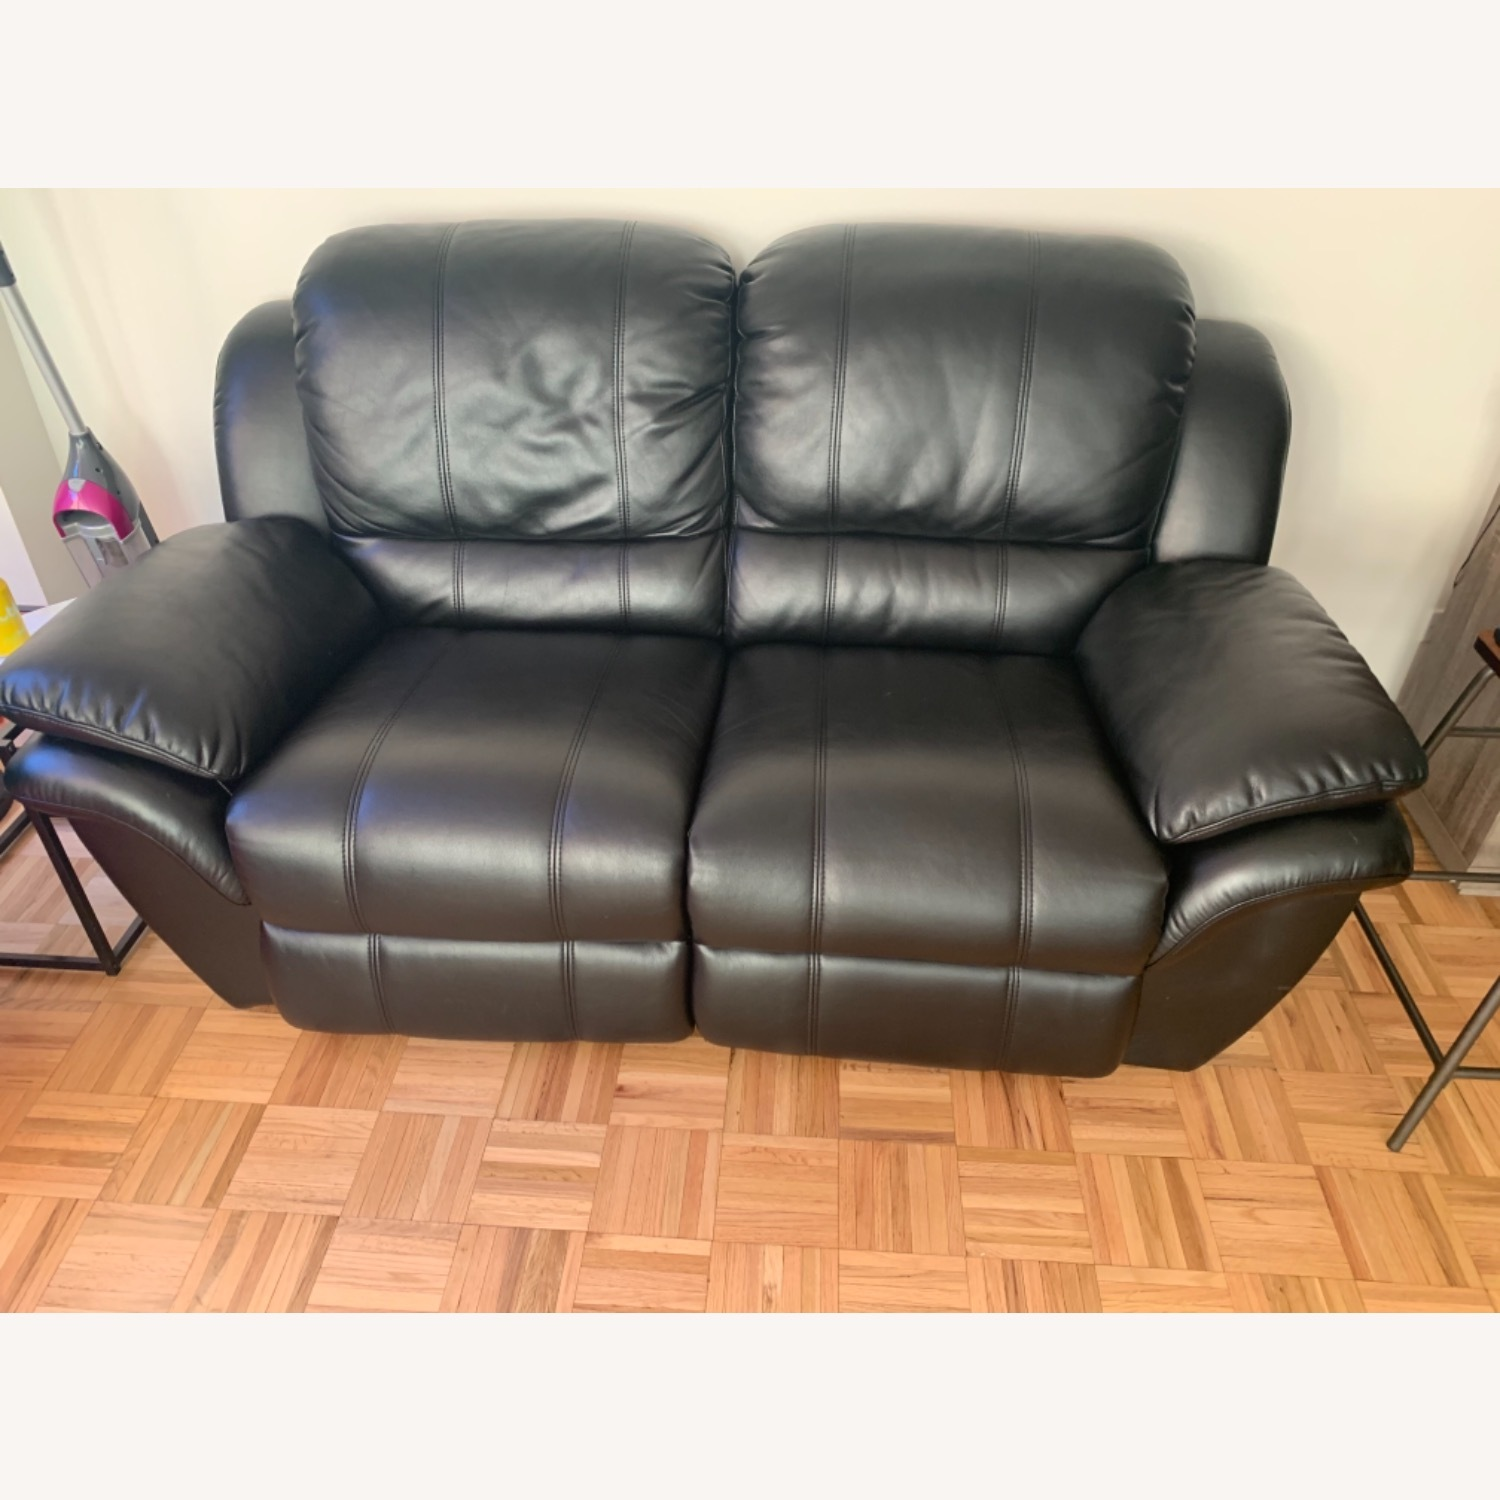 Bobs Black Leather Automatic Recliner Loveseat - image-6